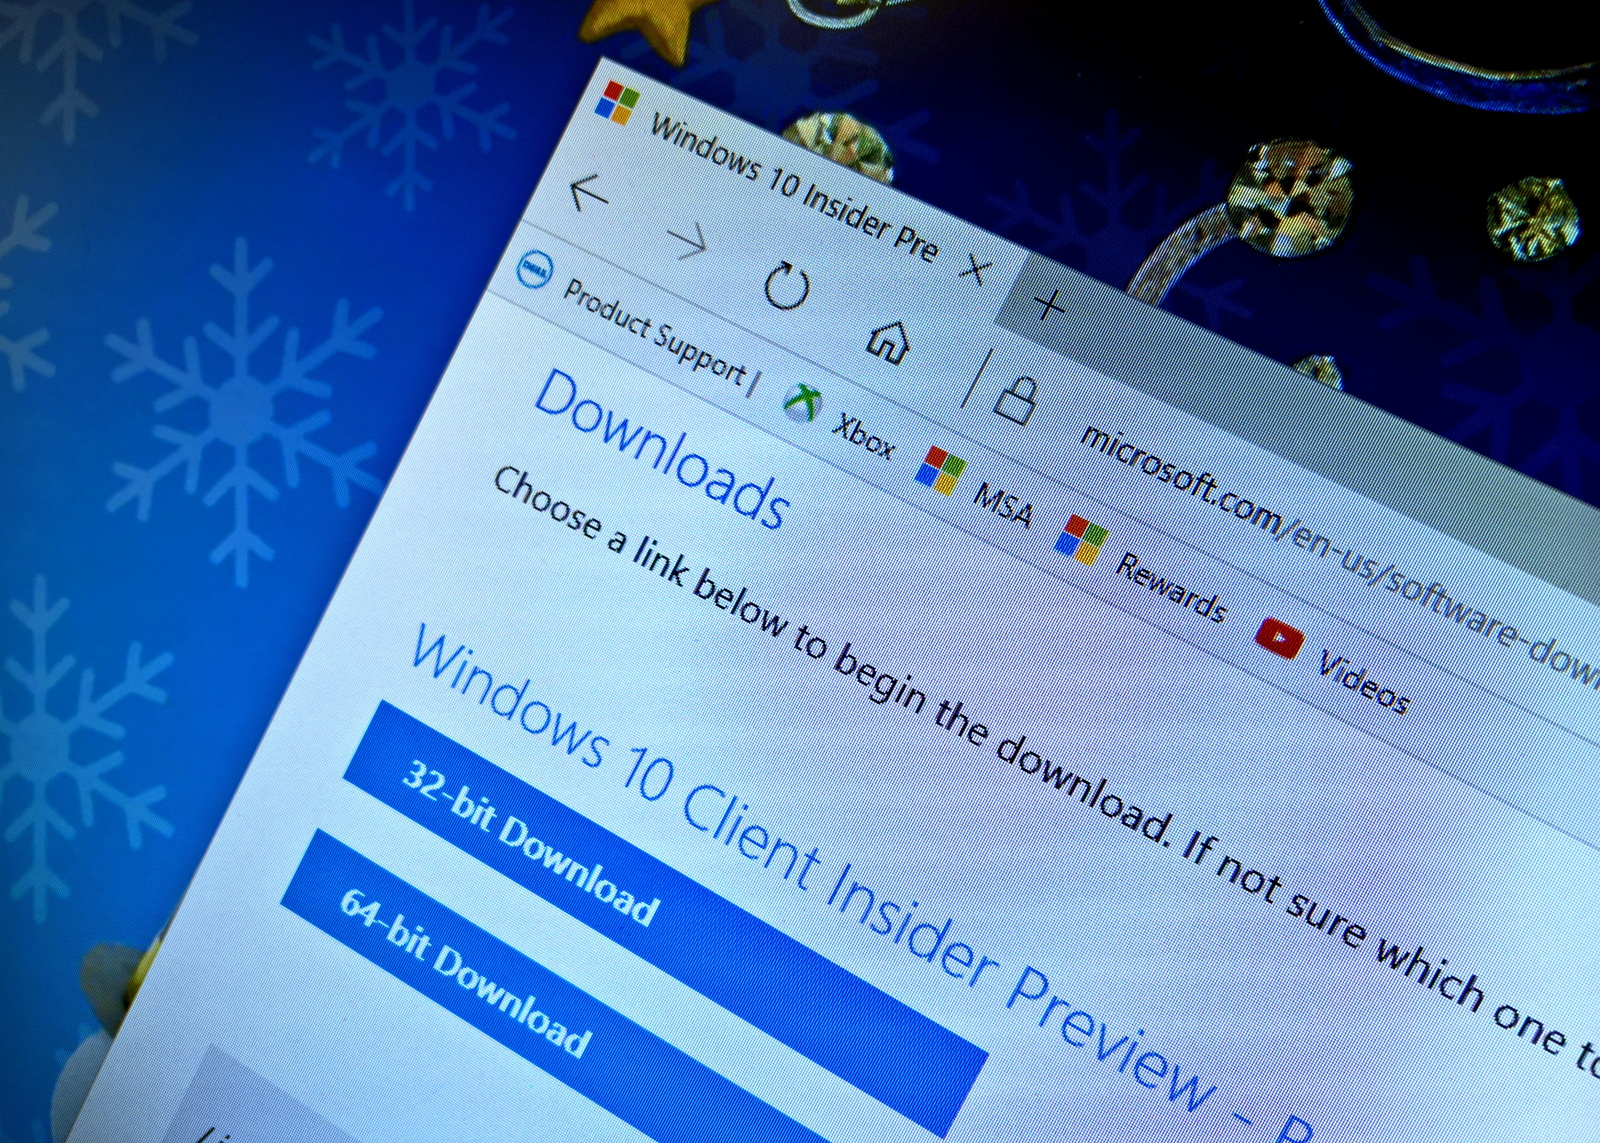 Download Windows 10 Insider Preview ISO files